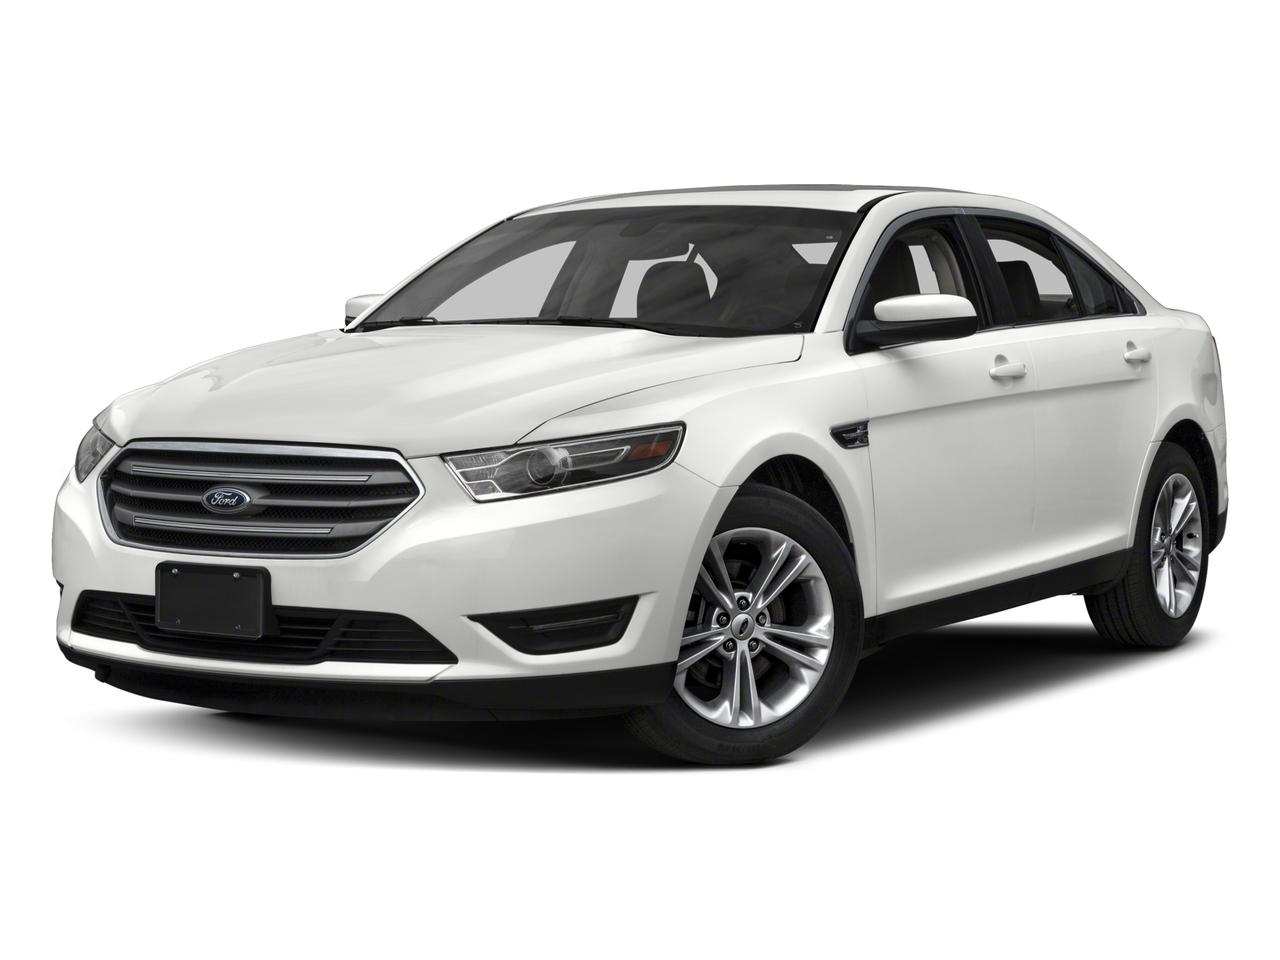 2017 Ford Taurus Vehicle Photo in Mission, TX 78572